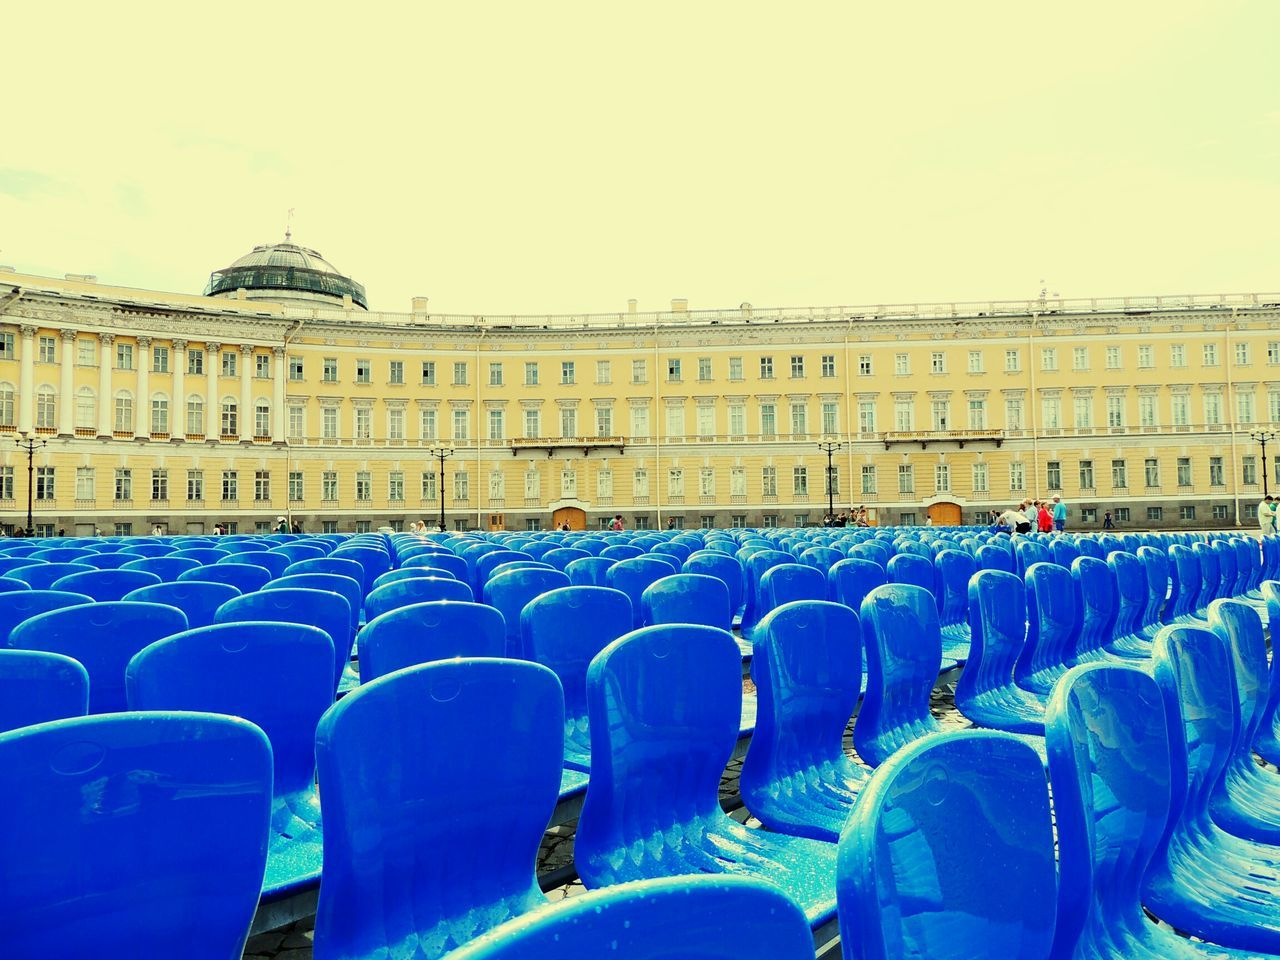 Blue Chairs Best Scene In World Concert Palace Square Sankt-peterburg Day Of The City Walking Around Russia